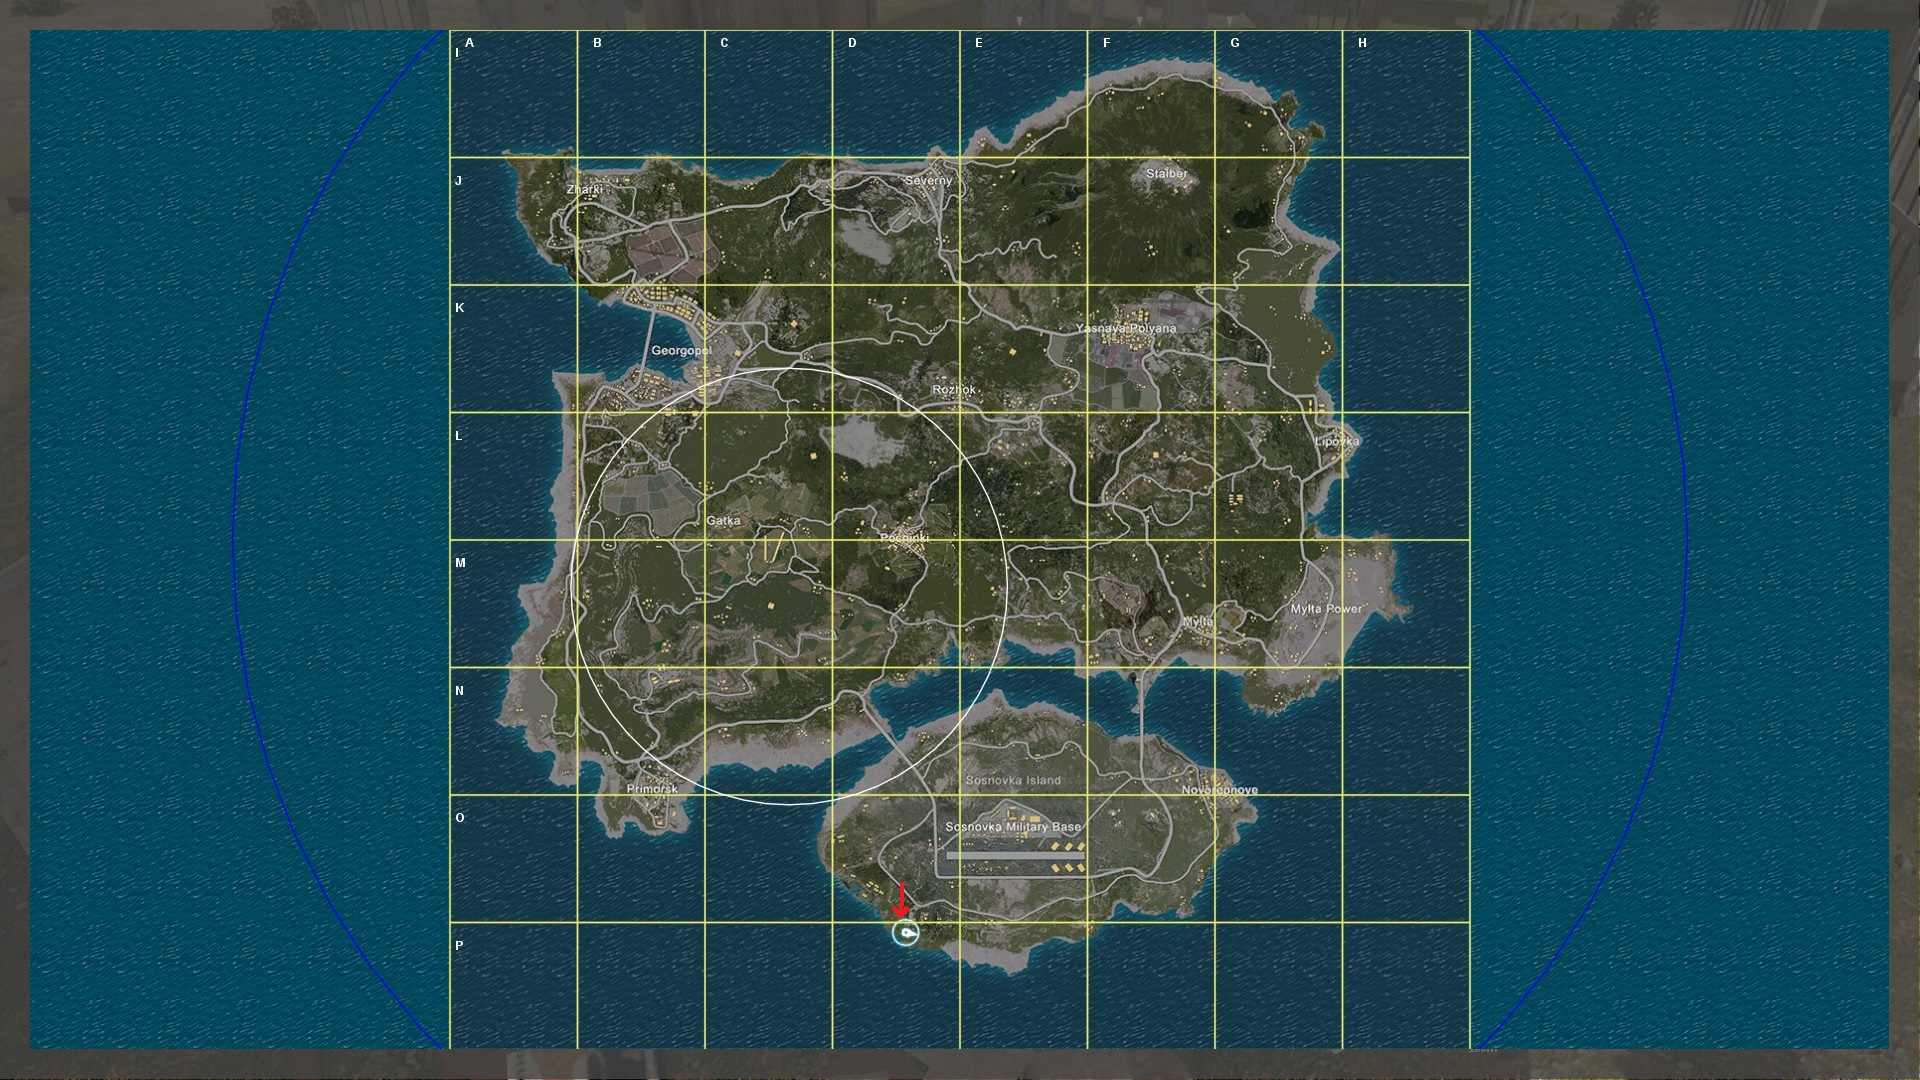 Playerunknown S Battlegrounds Maps Loot Maps Pictures: PUBG's Upcoming Desert Map Will Be 8x8km